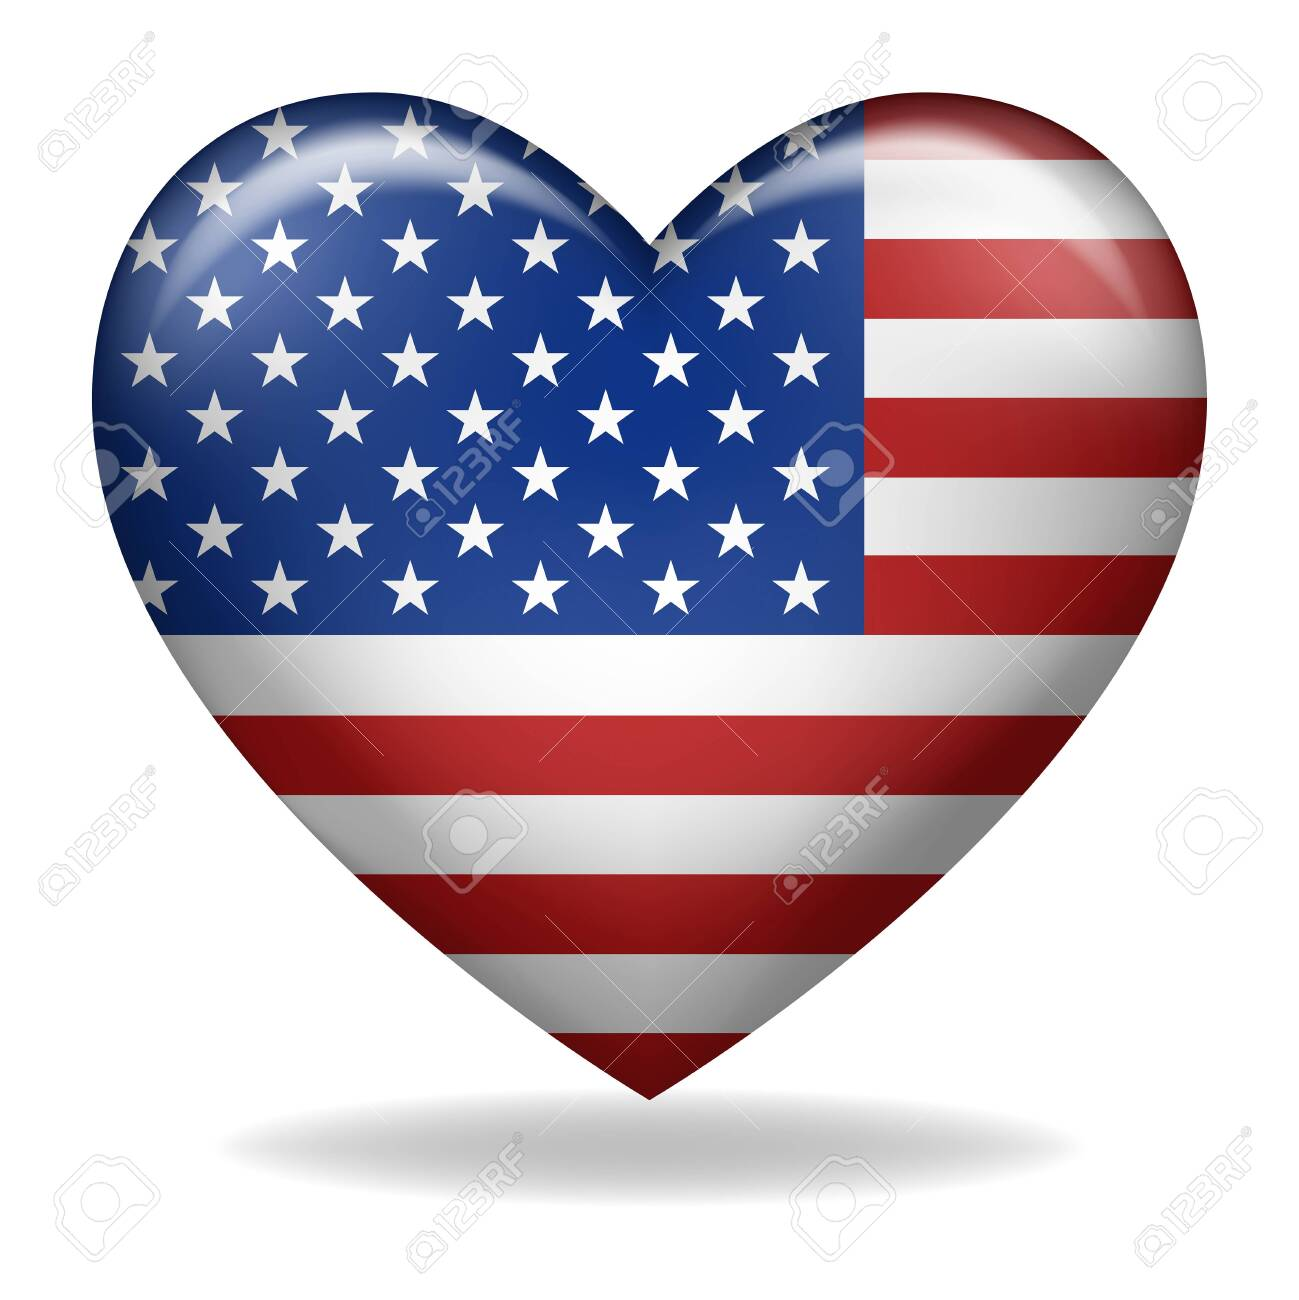 Vector illustration of heart shape of USA insignia isolated on white - 141060720